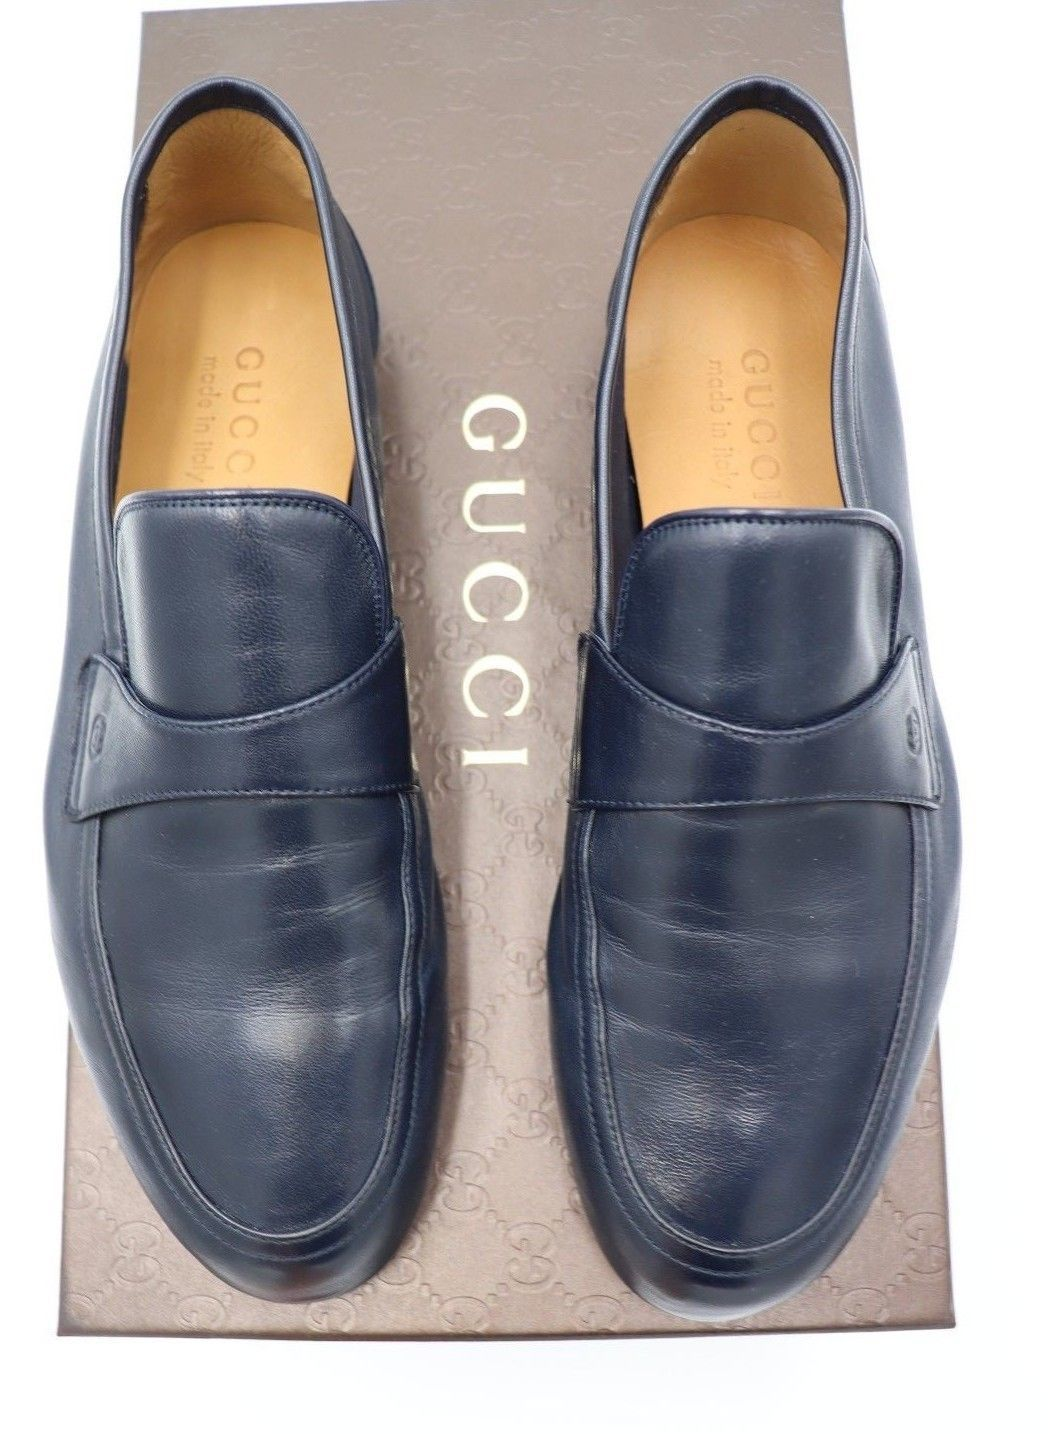 8d30cdbf2fb NIB Gucci Mens Unlined Navy Blue Leather Slip-on Loafers Shoes 7 US